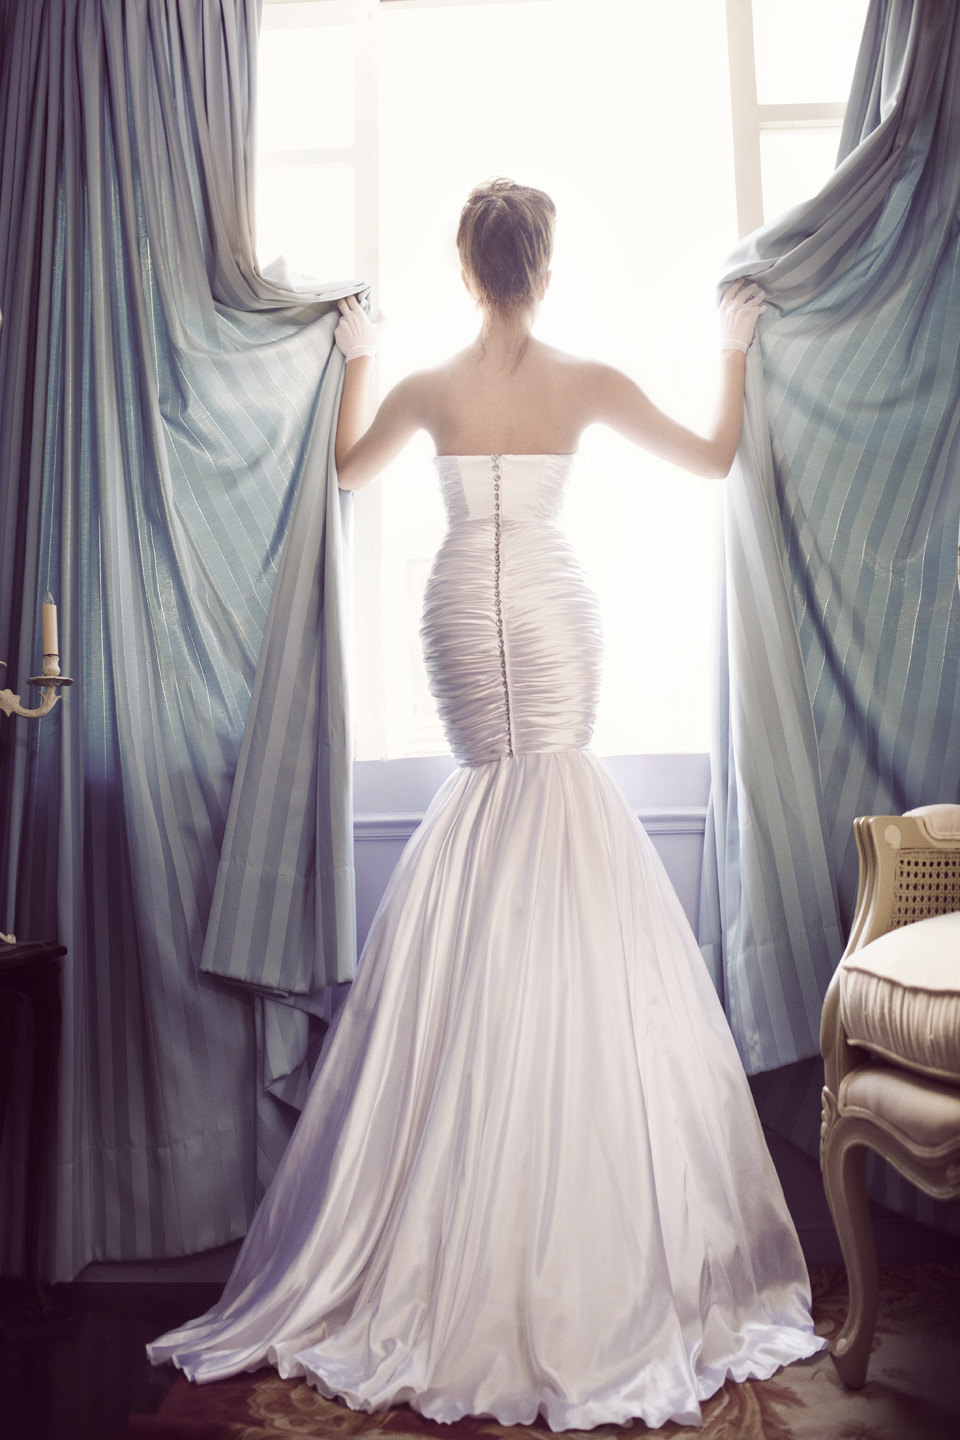 Drop Waist Mermaid Wedding Dress with Sweetheart Neckline Crystal Sash